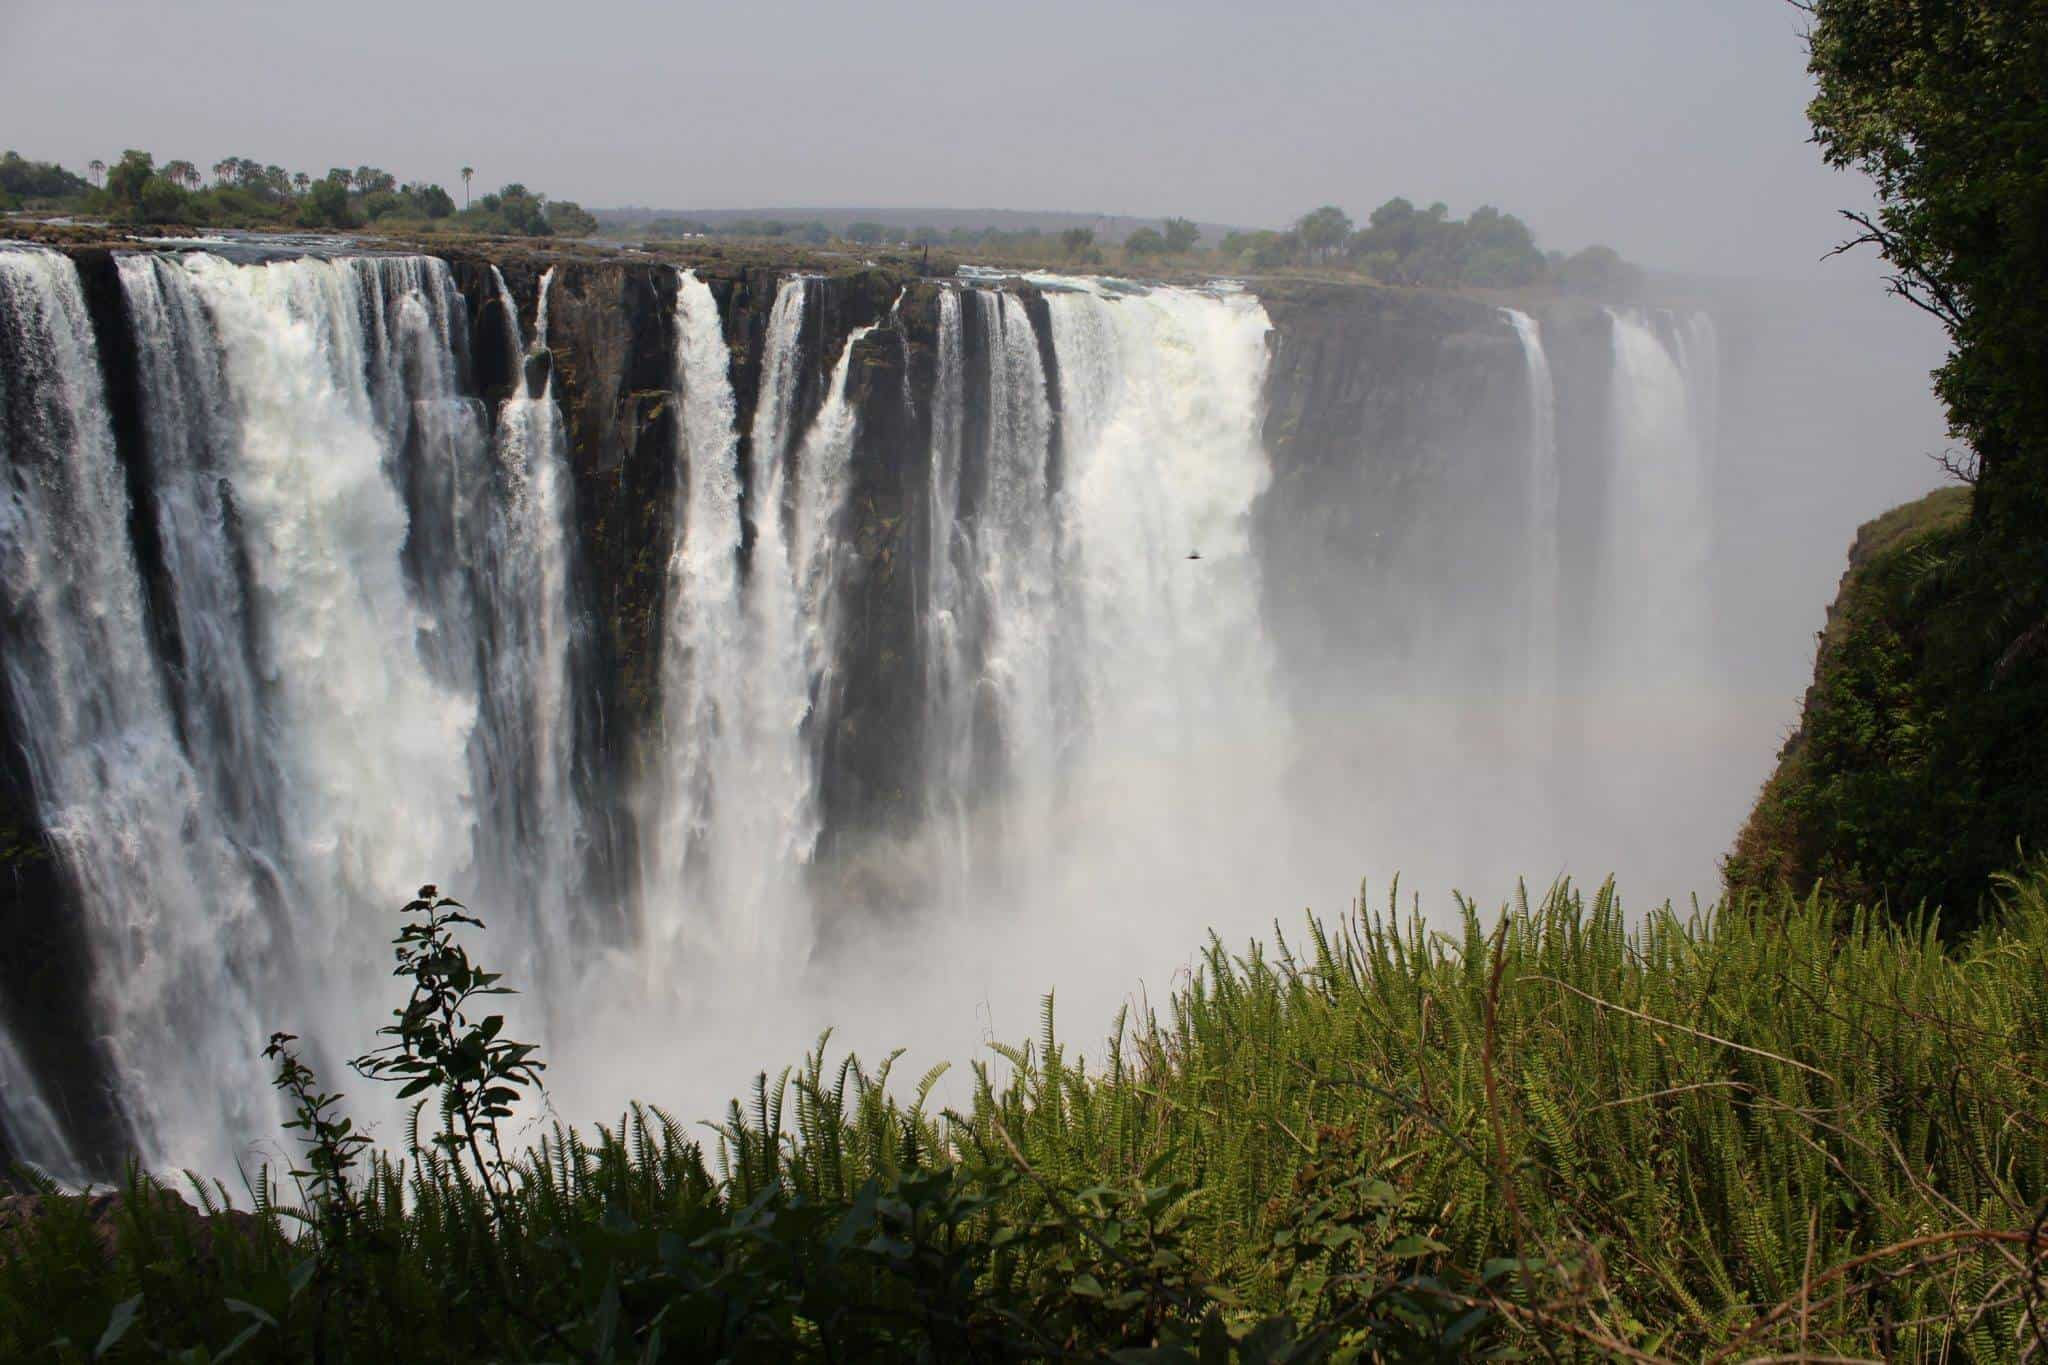 zambia is one of the Safest countries in Africa